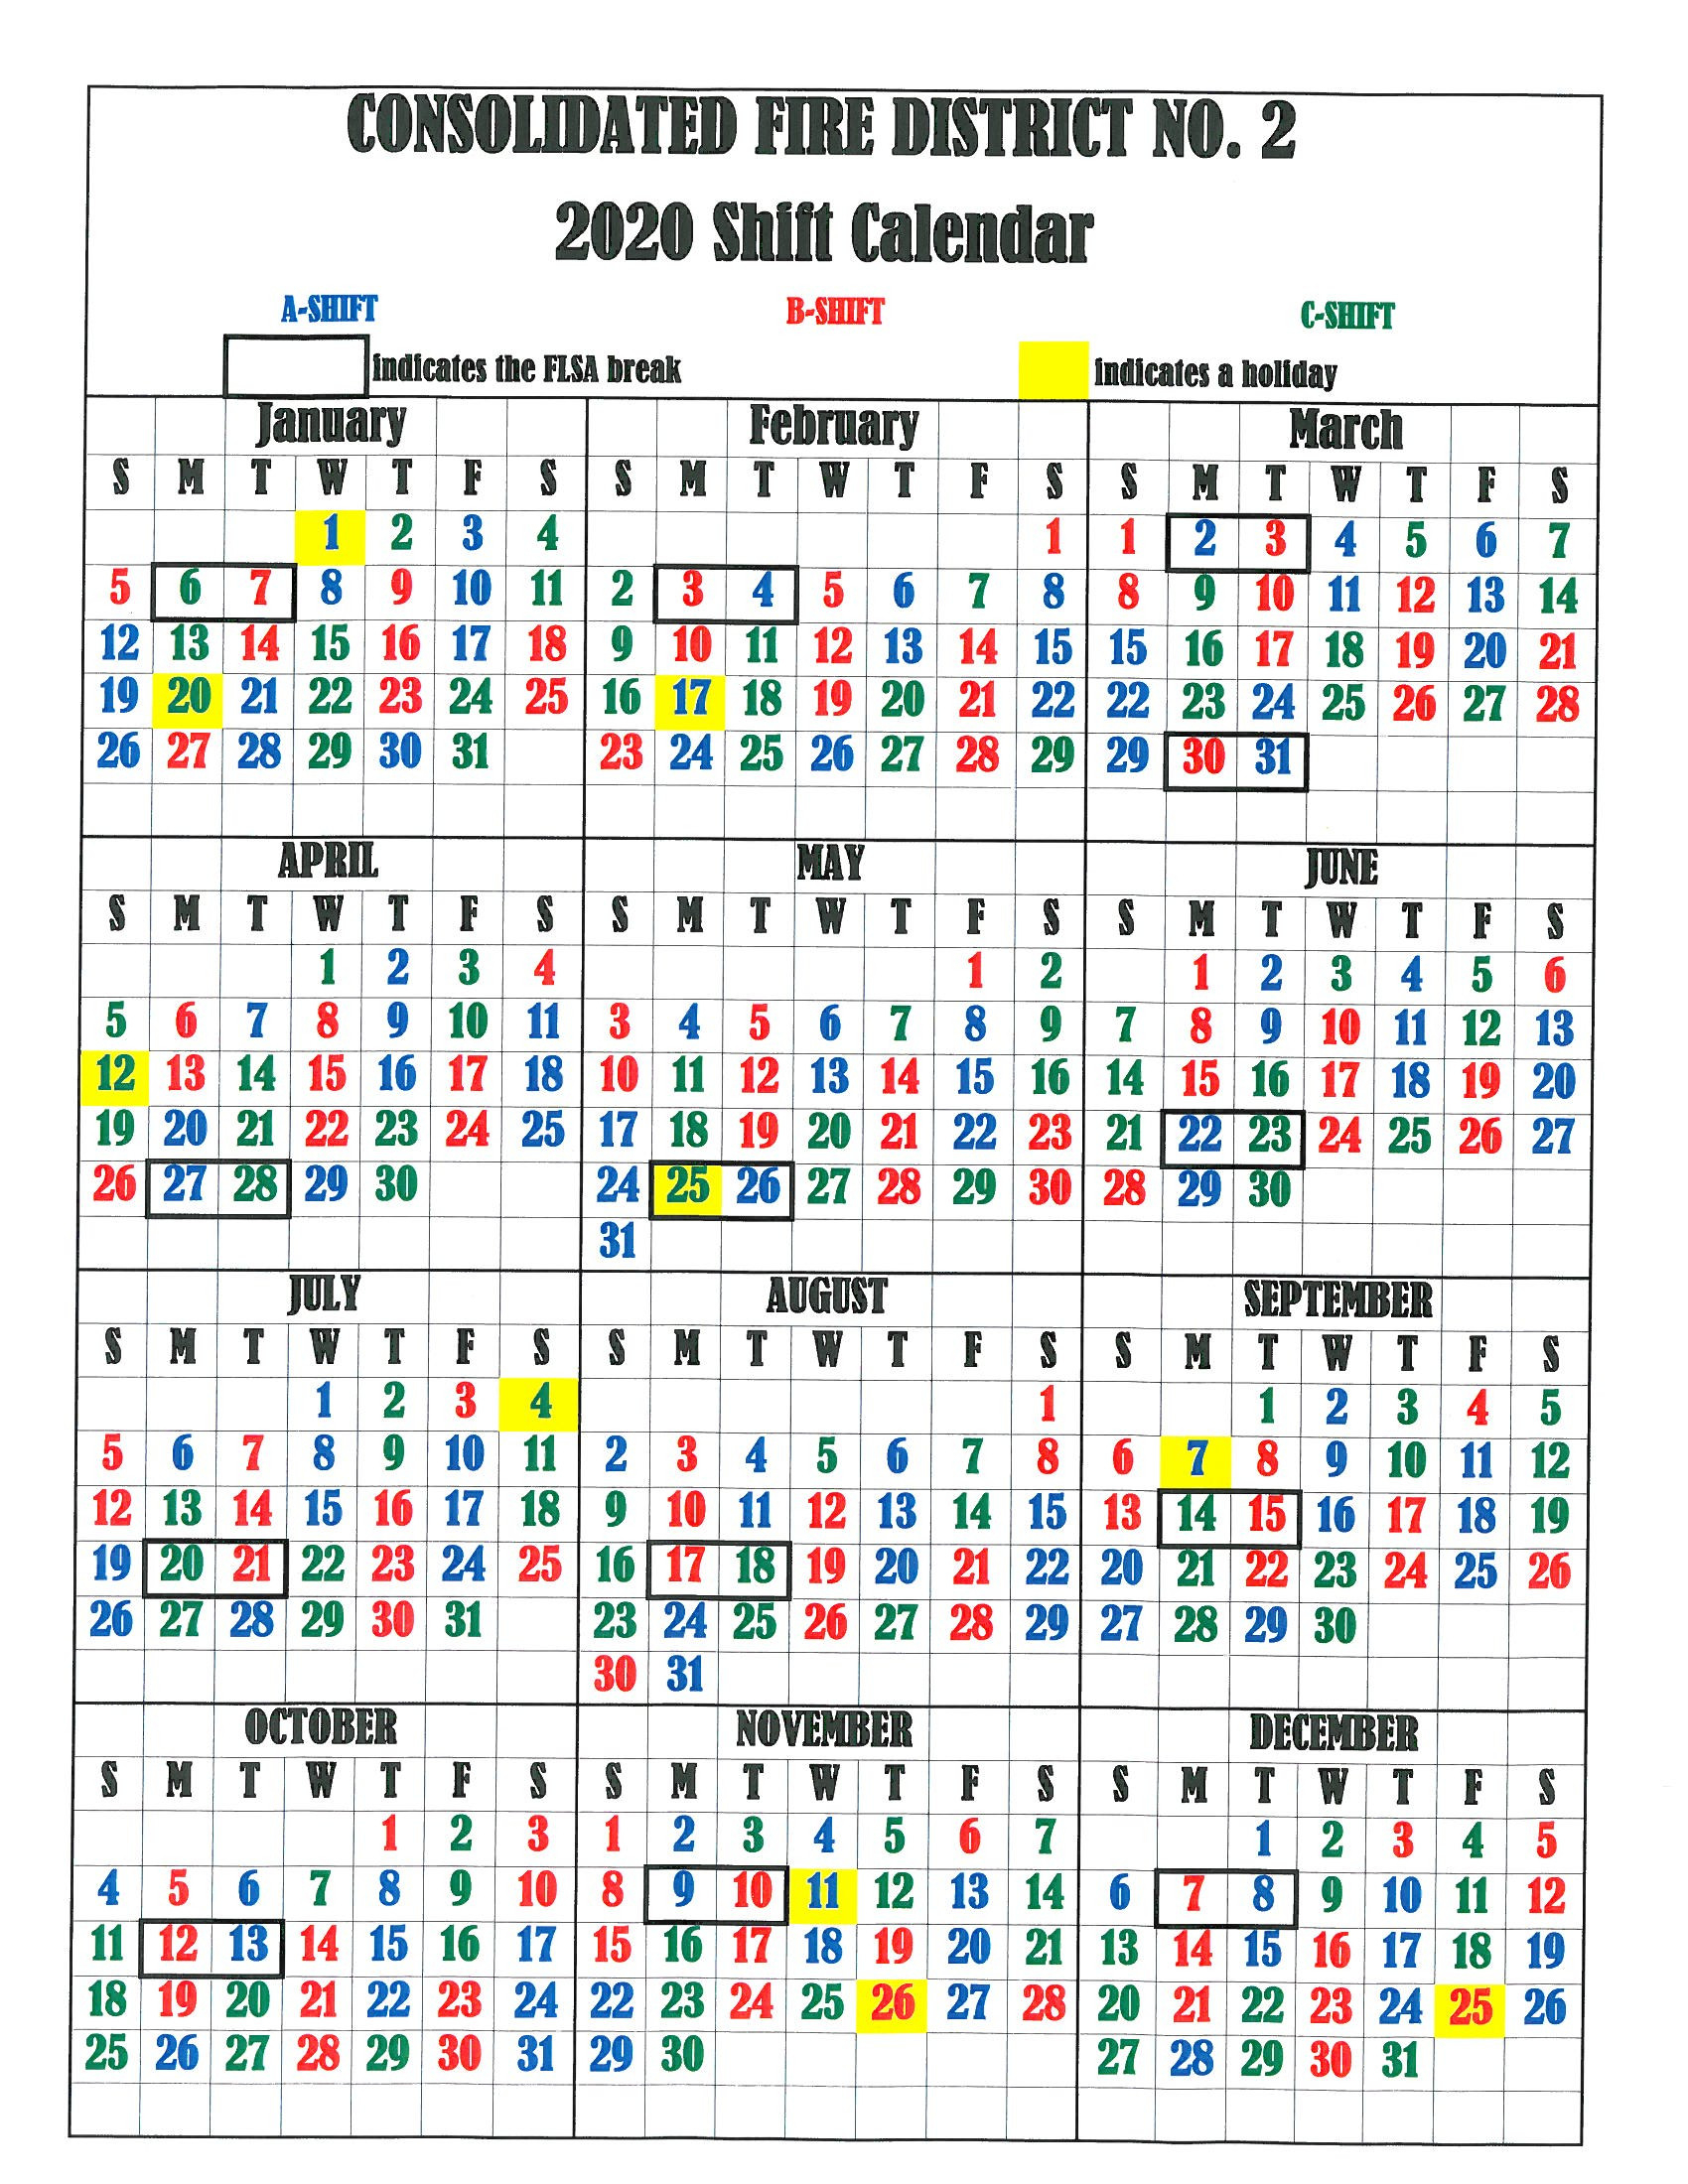 Firefighter Shift Calendar 2020 Printable | Example  Fdny Shift Schedule